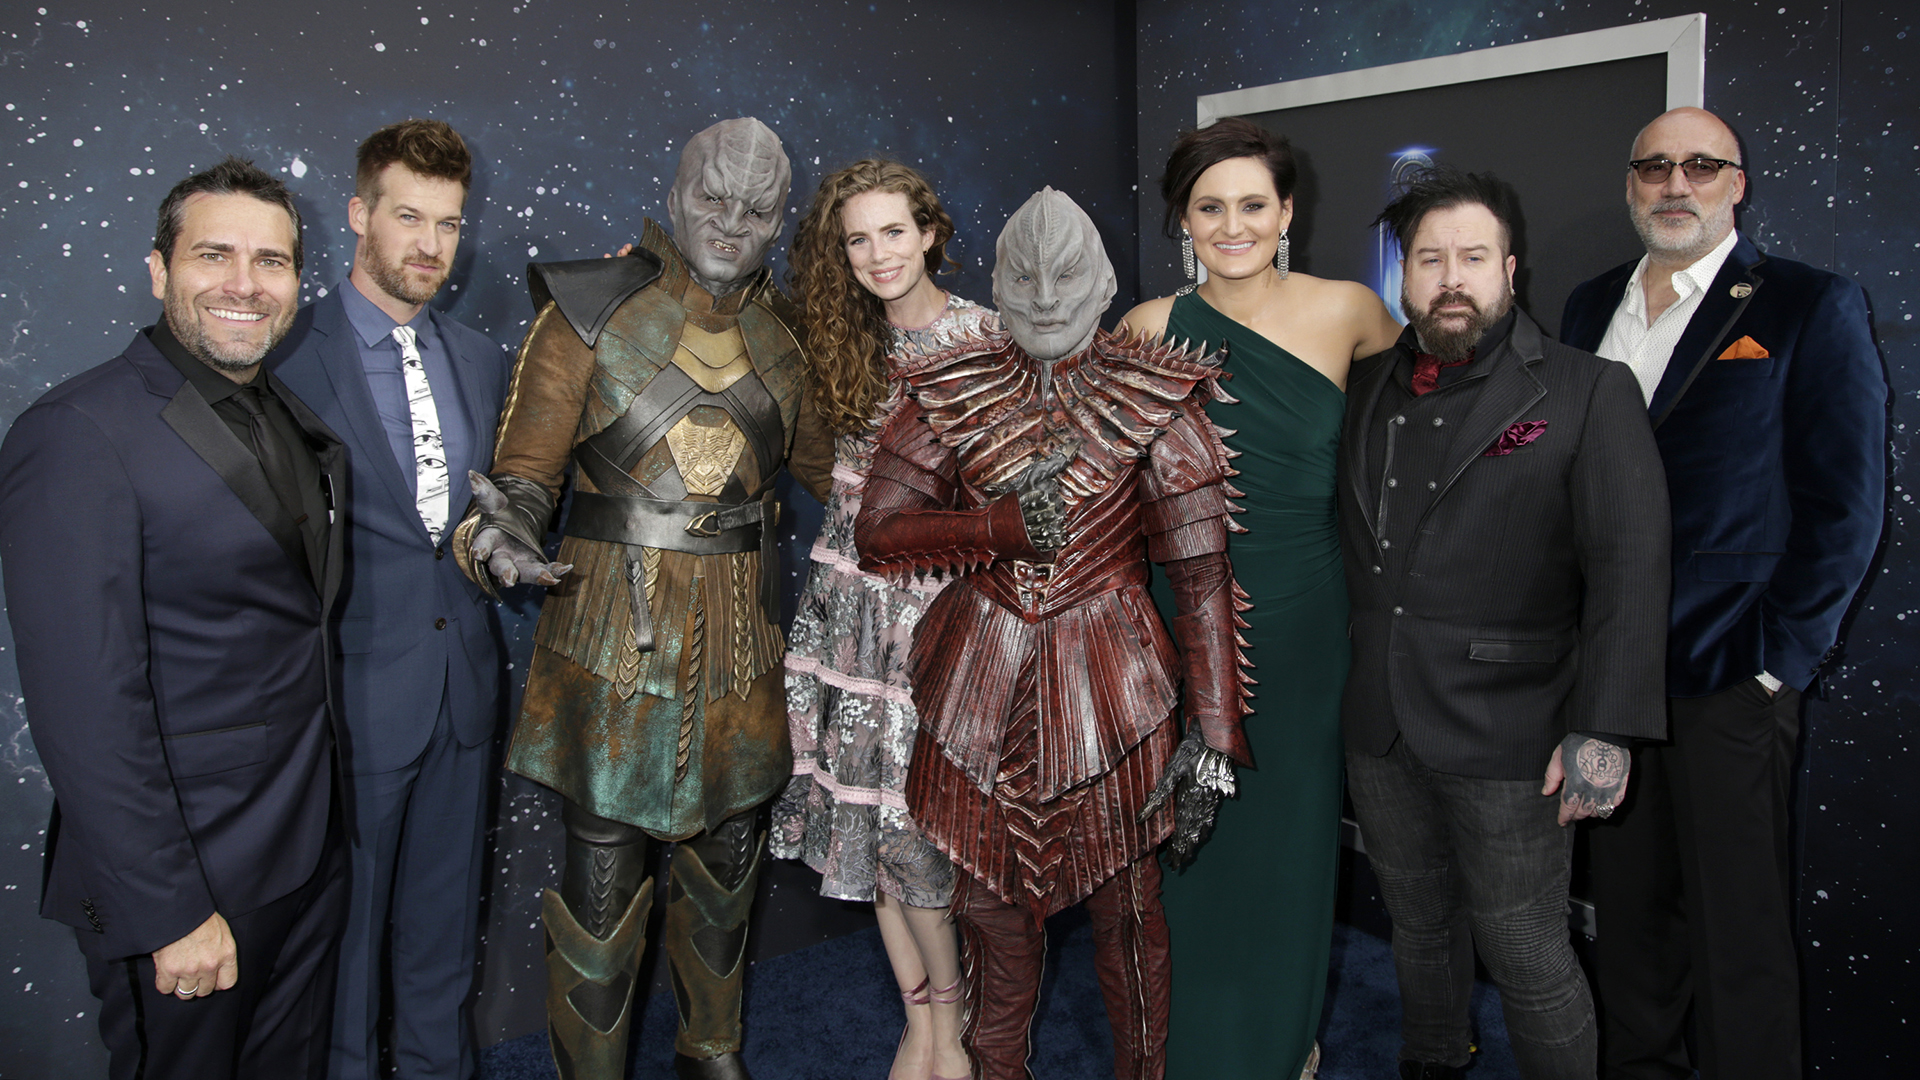 Cast and crew: James MacKinnon, Kenneth Mitchell, Clare McConnell, Mary Chieffo, Glenn Hetrick, and Neville Page (with Klingons!) from Star Trek: Discovery